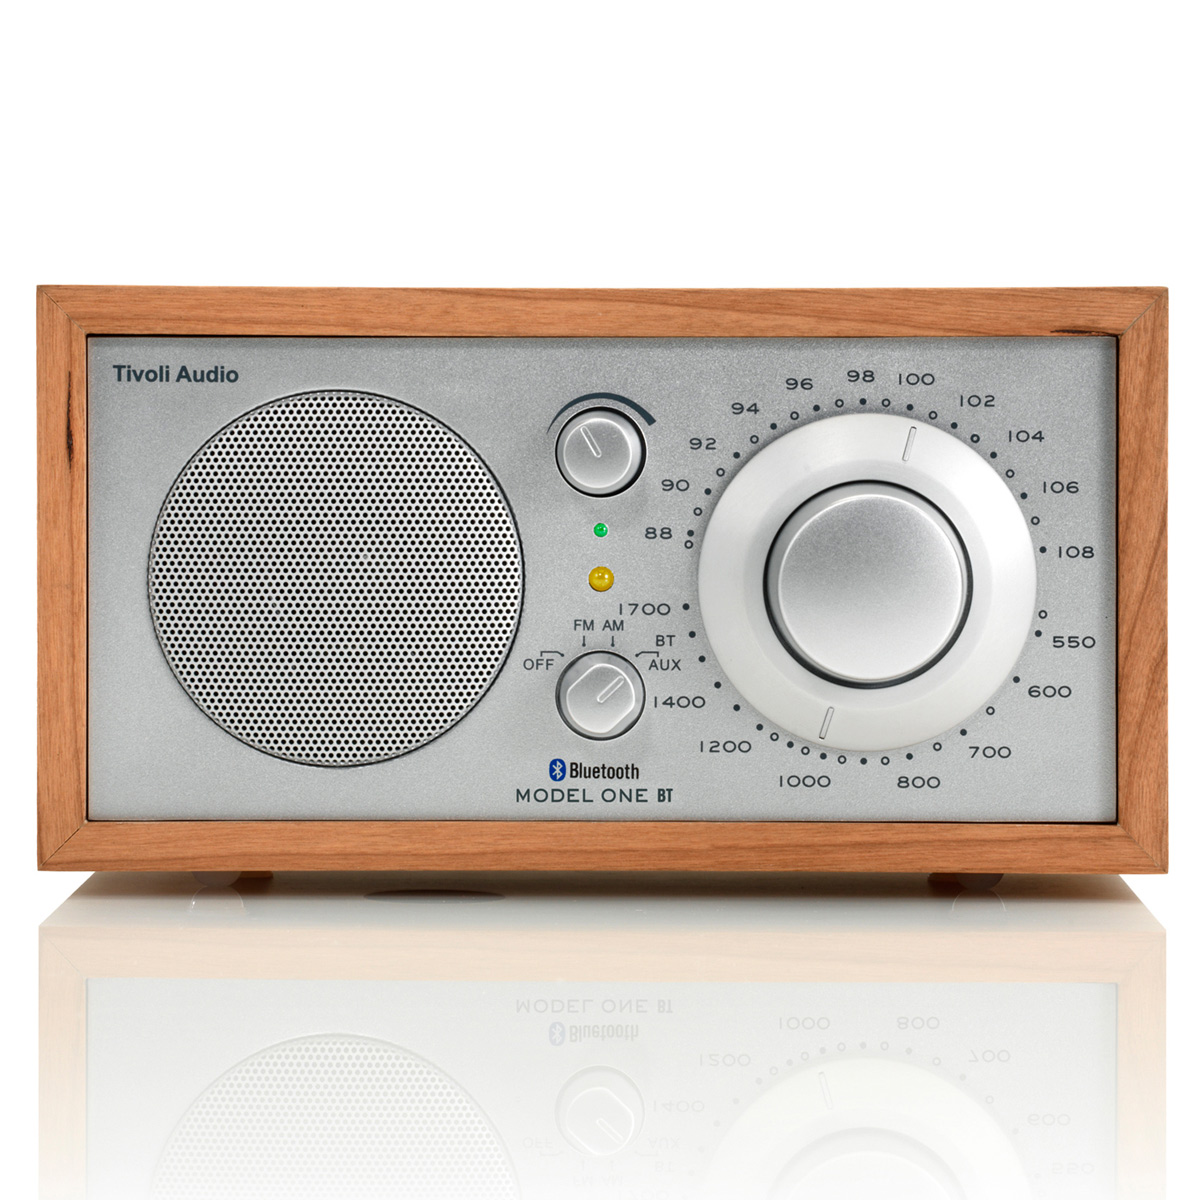 Tivoli Audio Model One Cijena Tivoli Audio Model One Am Fm Radio With Bluetooth Ebay